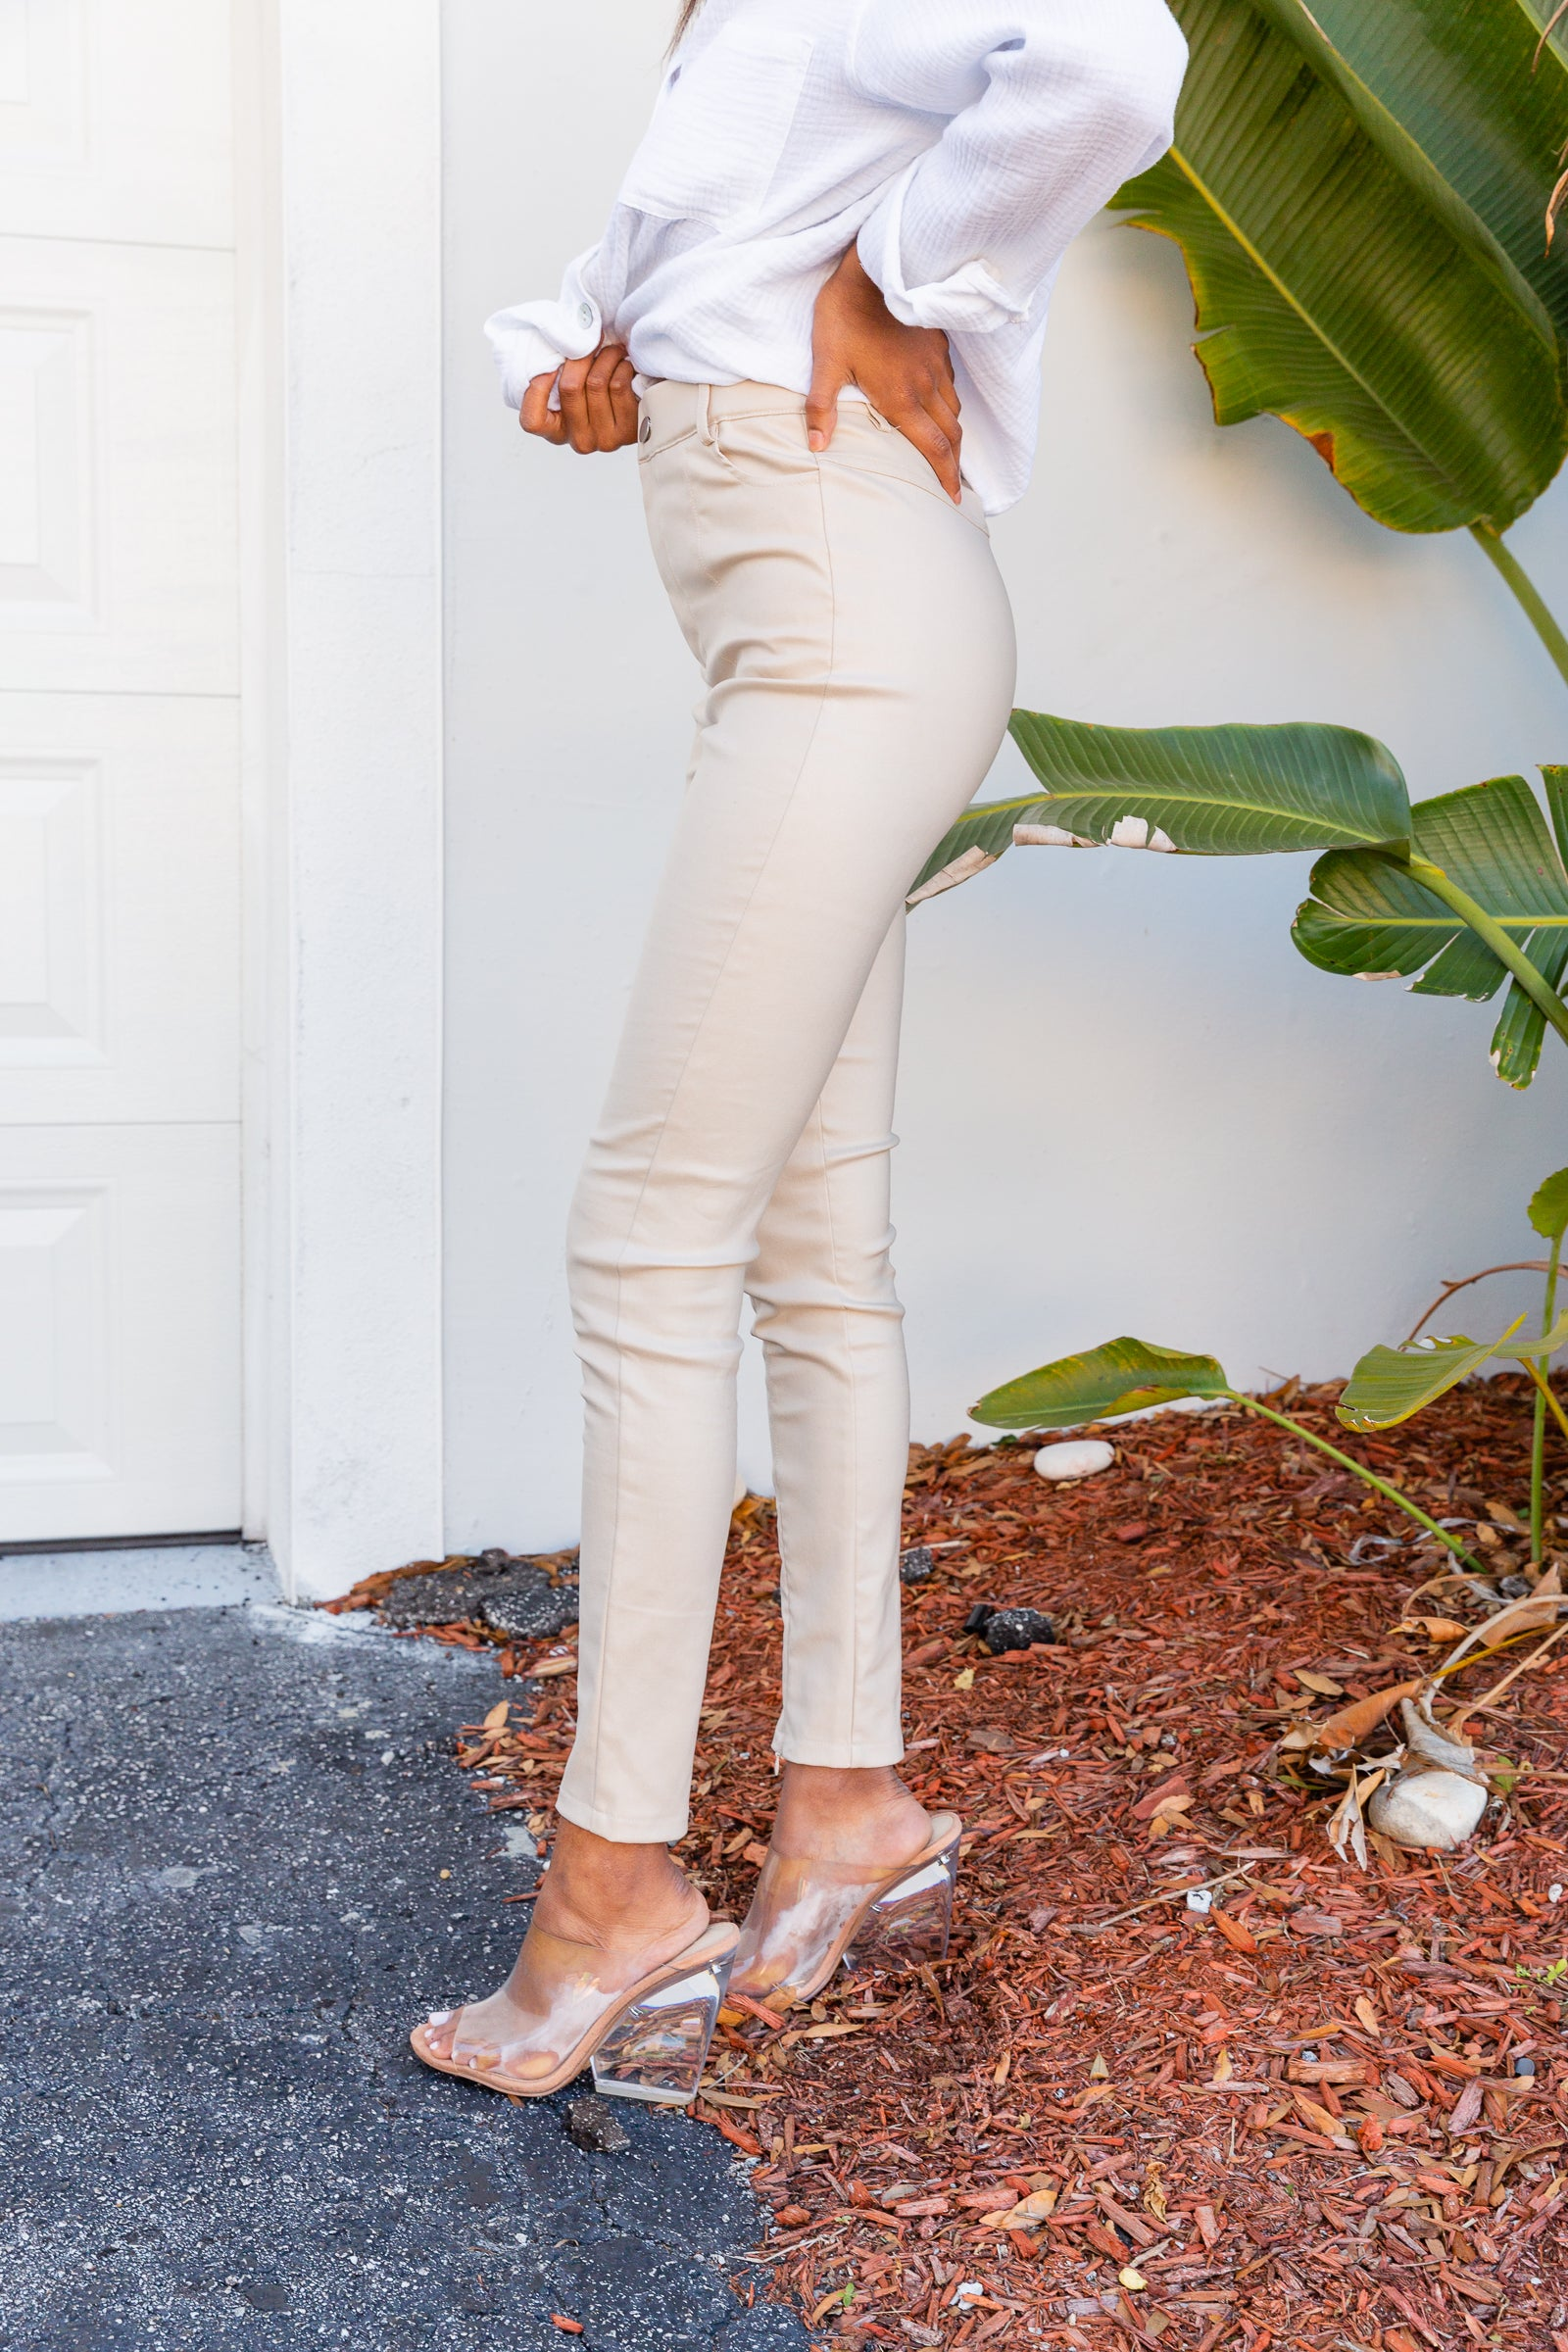 Stretchy faux leather fabric offers a mid-rise fit with button and zipper fly before going down into skinny pant legs. These jegging feature ankle zipper detailing at the center.